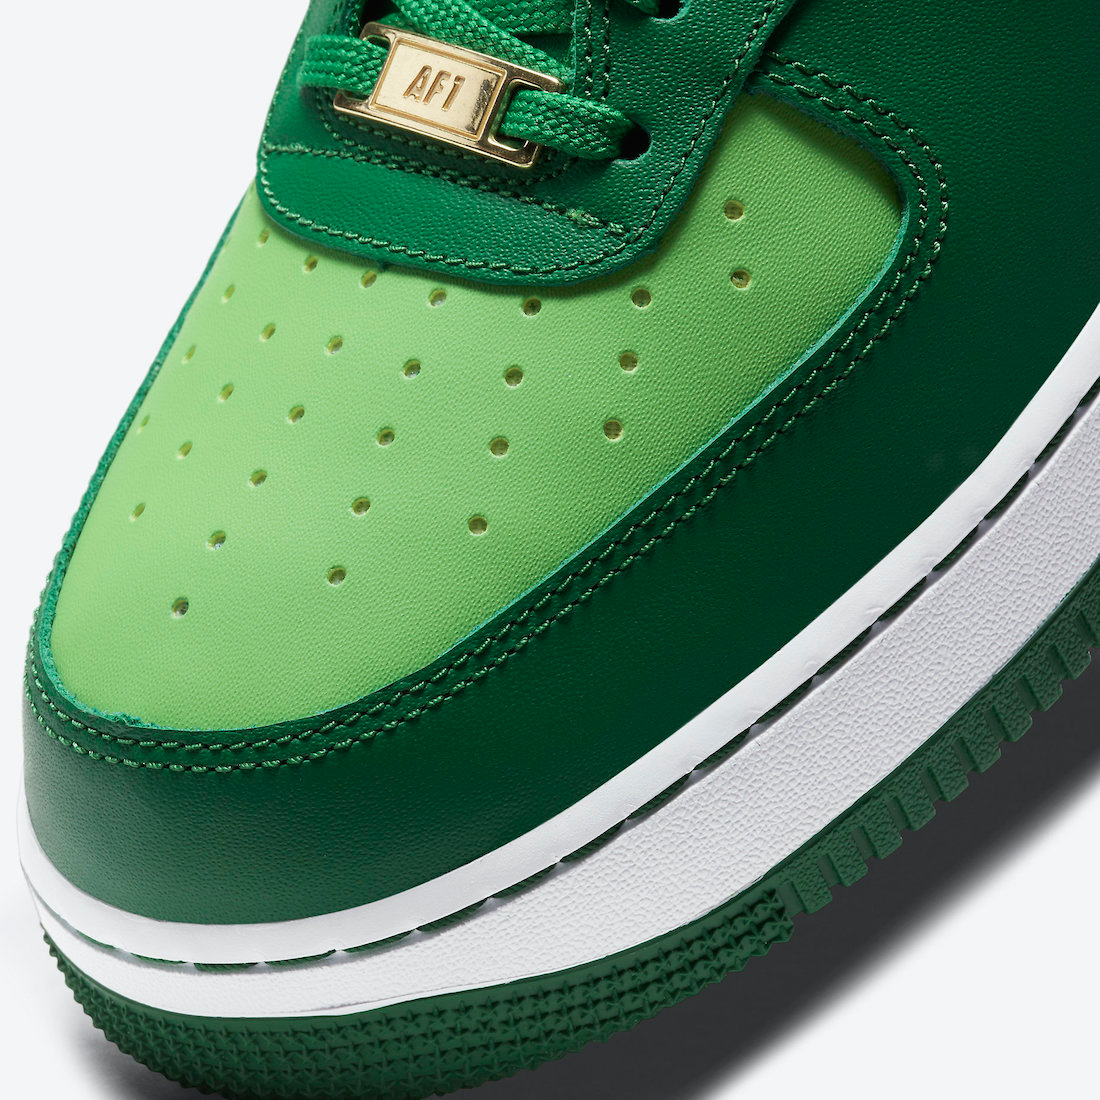 nike-air-force-1-st-patricks-day-2021-release-date-price-resell-where-to-buy-8